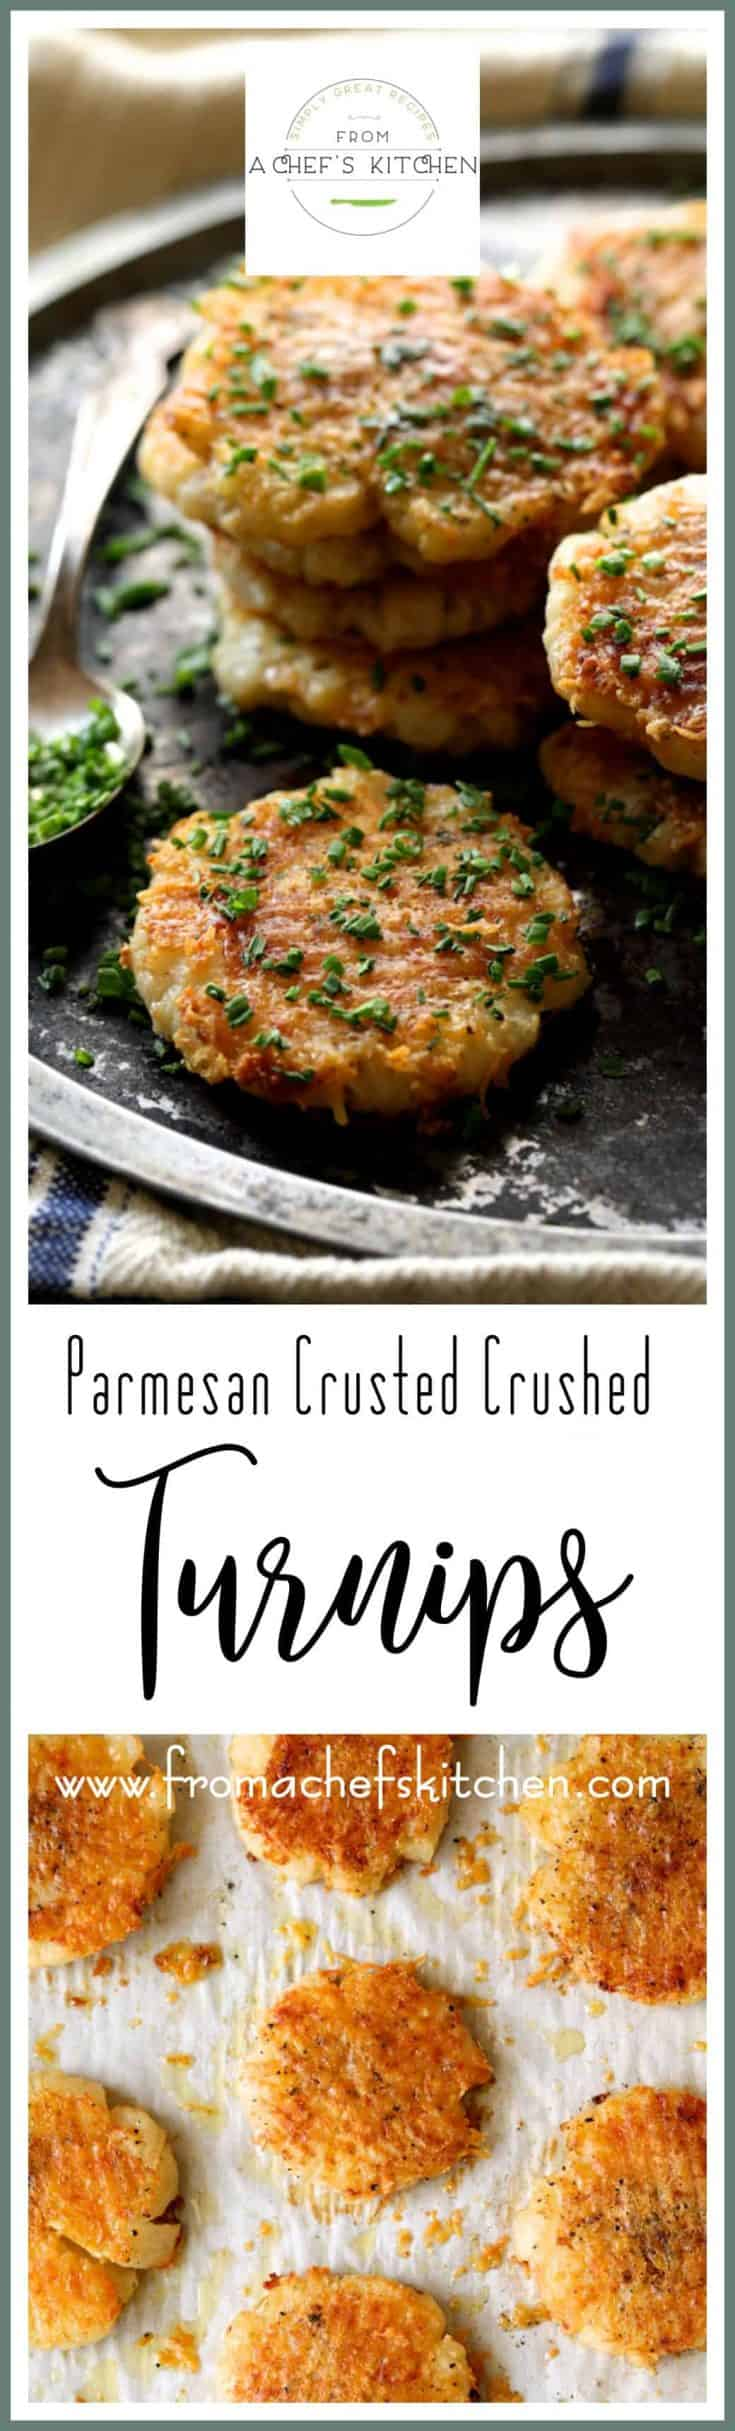 Parmesan Crusted Crushed Turnips are a sophisticated, delicious, low-carb alternative to crushed potatoes!  #parmesan #turnips #lowcarb #vegetable